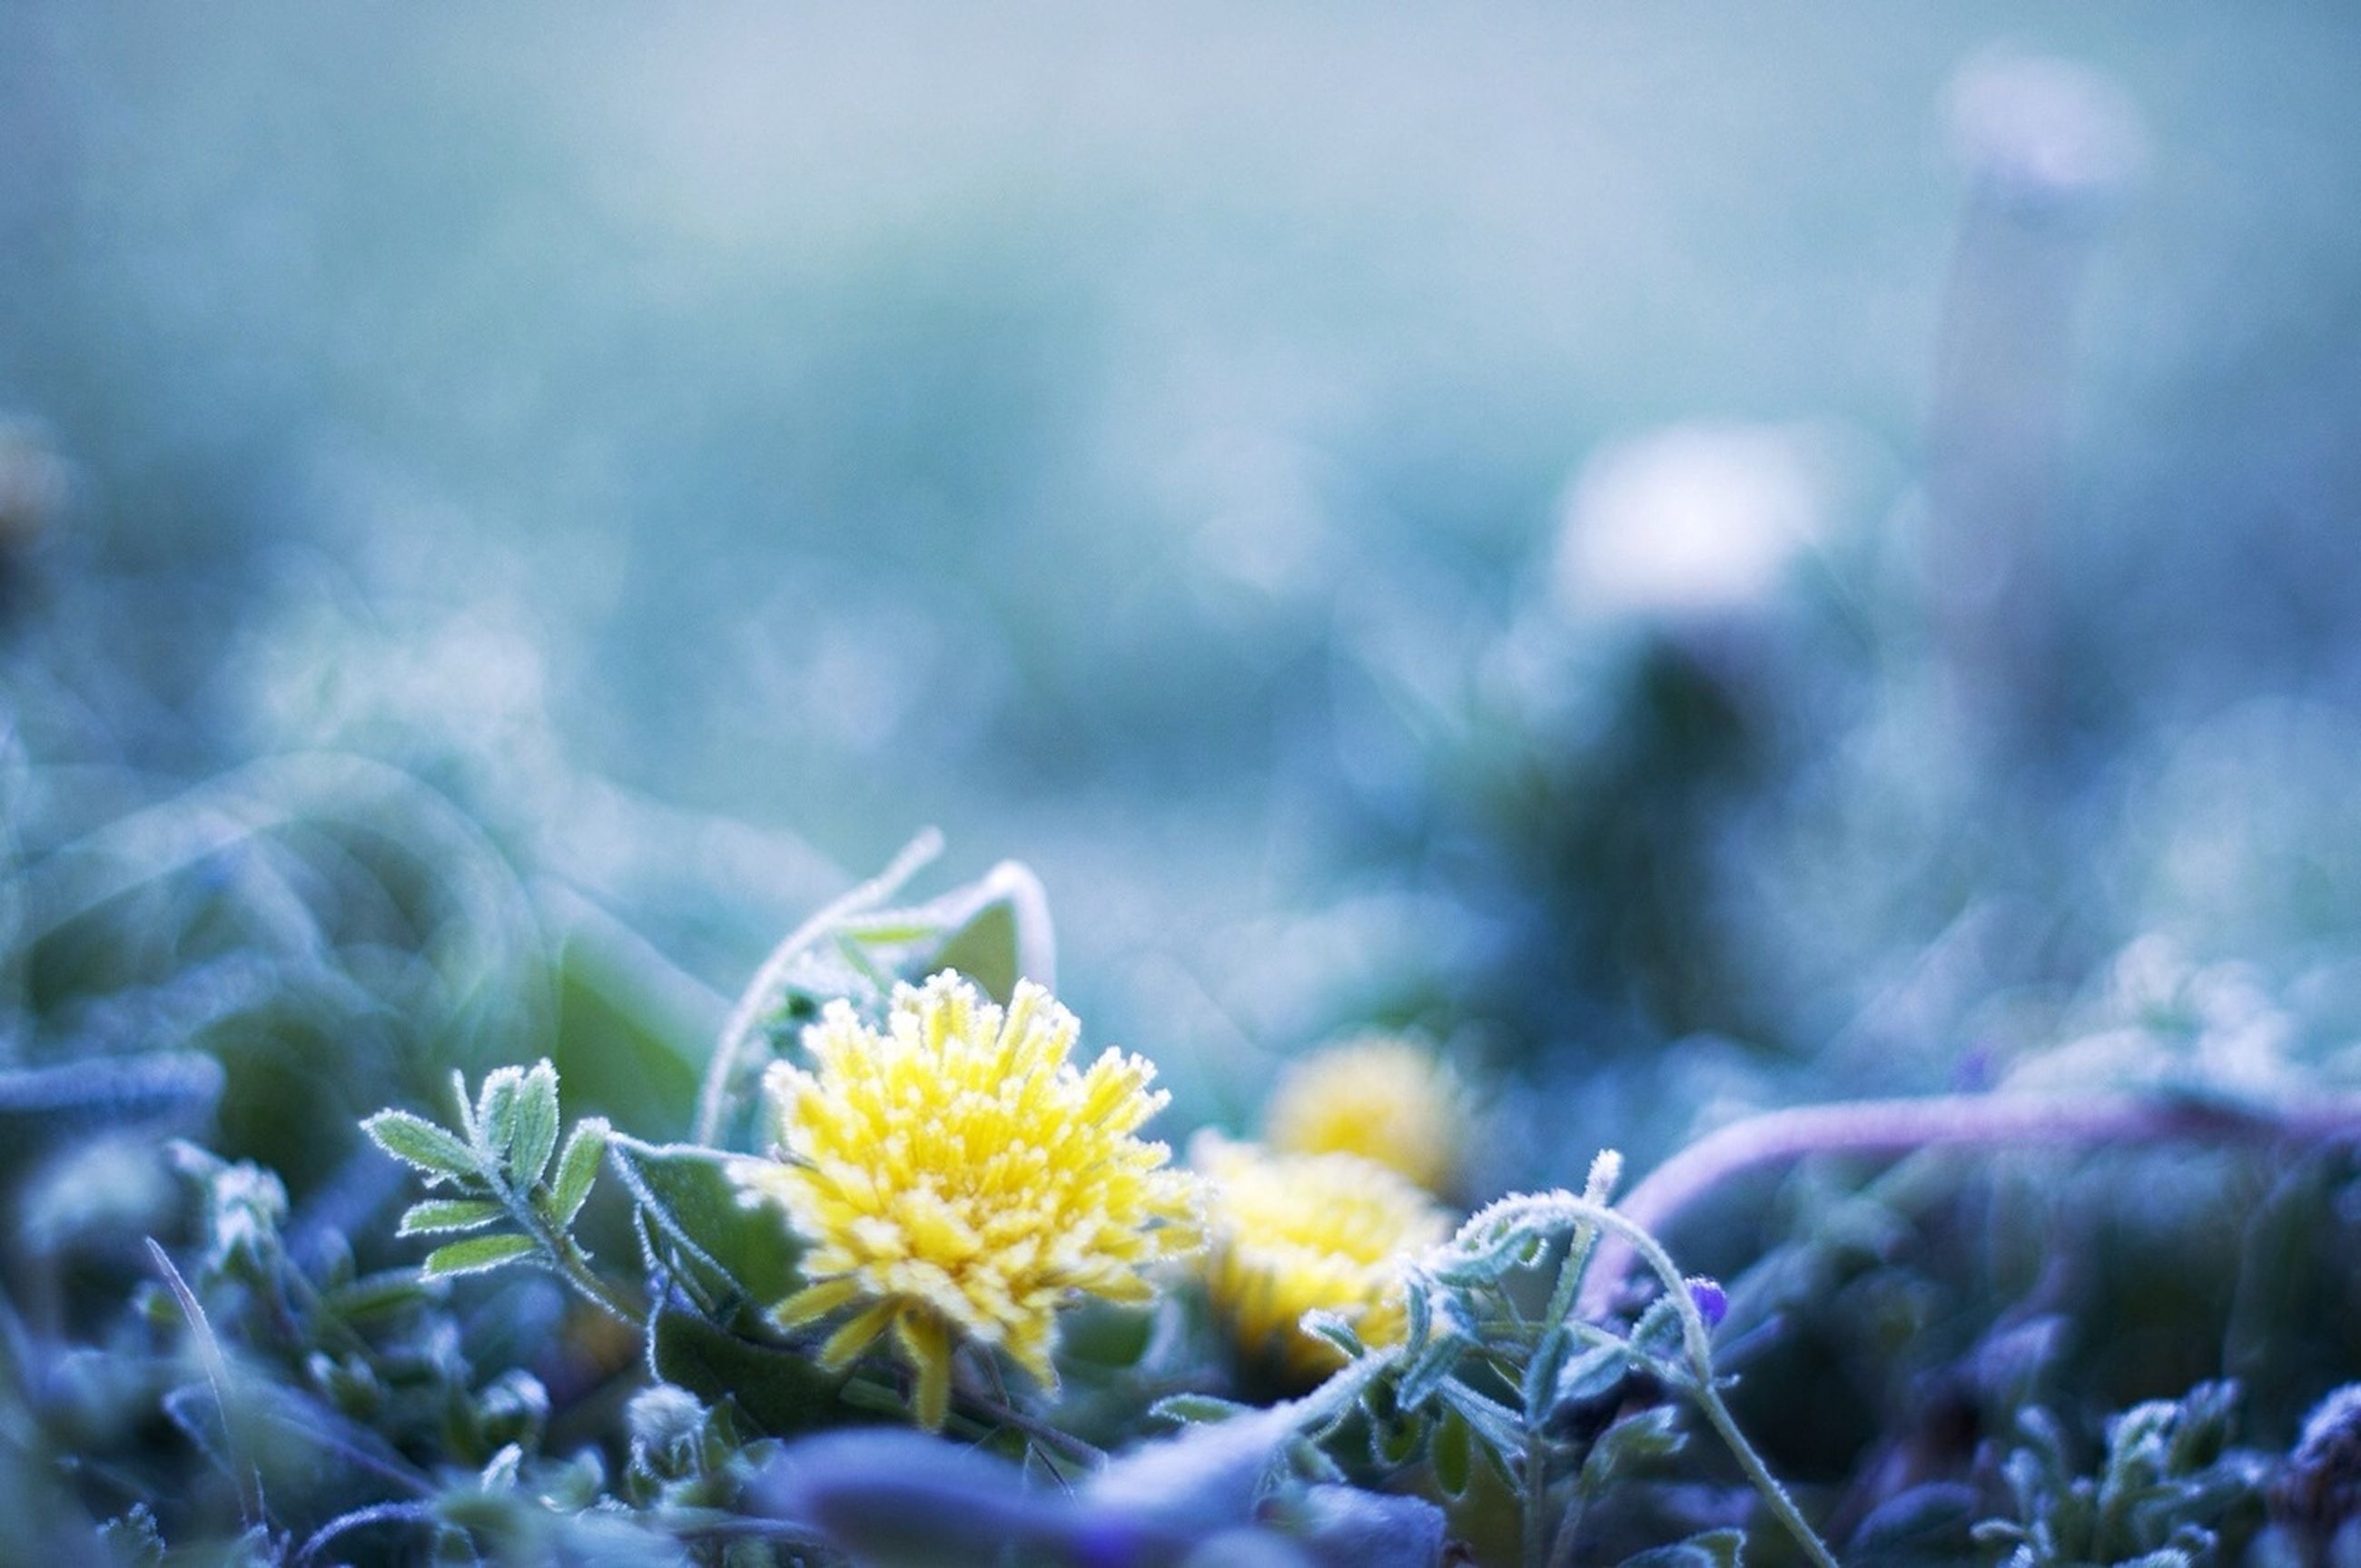 flower, fragility, focus on foreground, close-up, plant, nature, freshness, selective focus, beauty in nature, growth, petal, blooming, animal themes, outdoors, day, one animal, yellow, flower head, animals in the wild, cold temperature